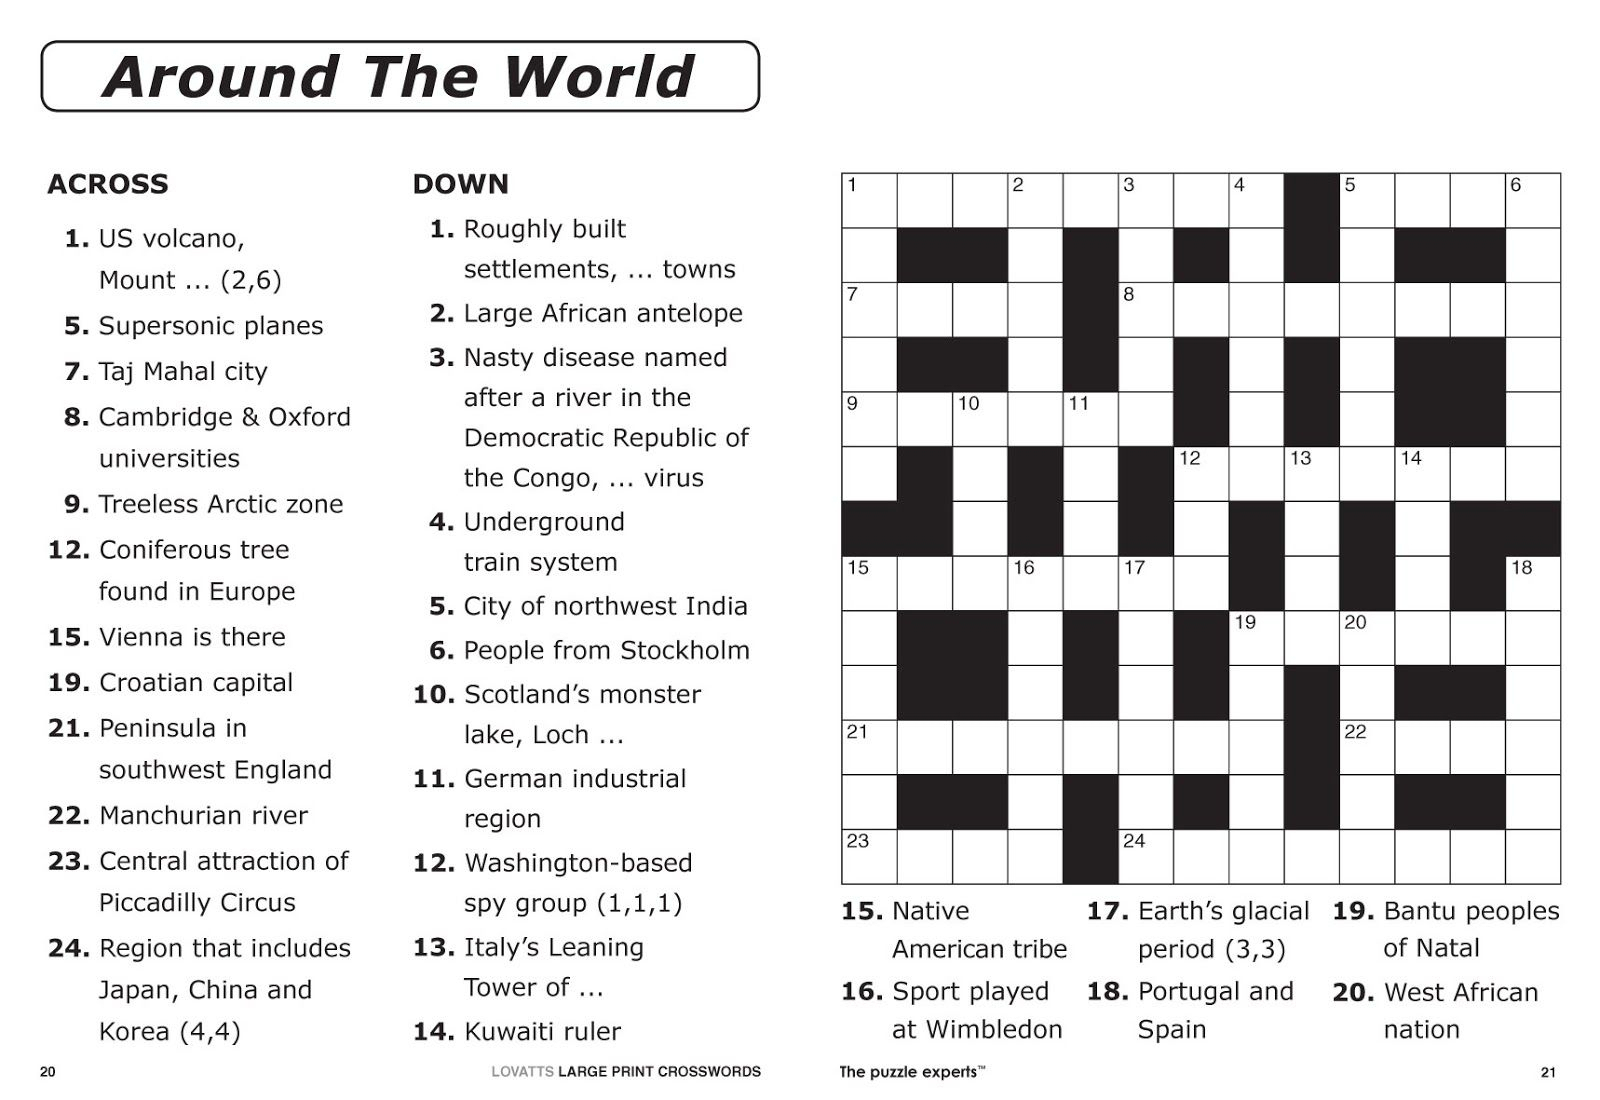 Free Printable Large Print Crossword Puzzles | M3U8 - Printable Crossword Puzzles By Topic